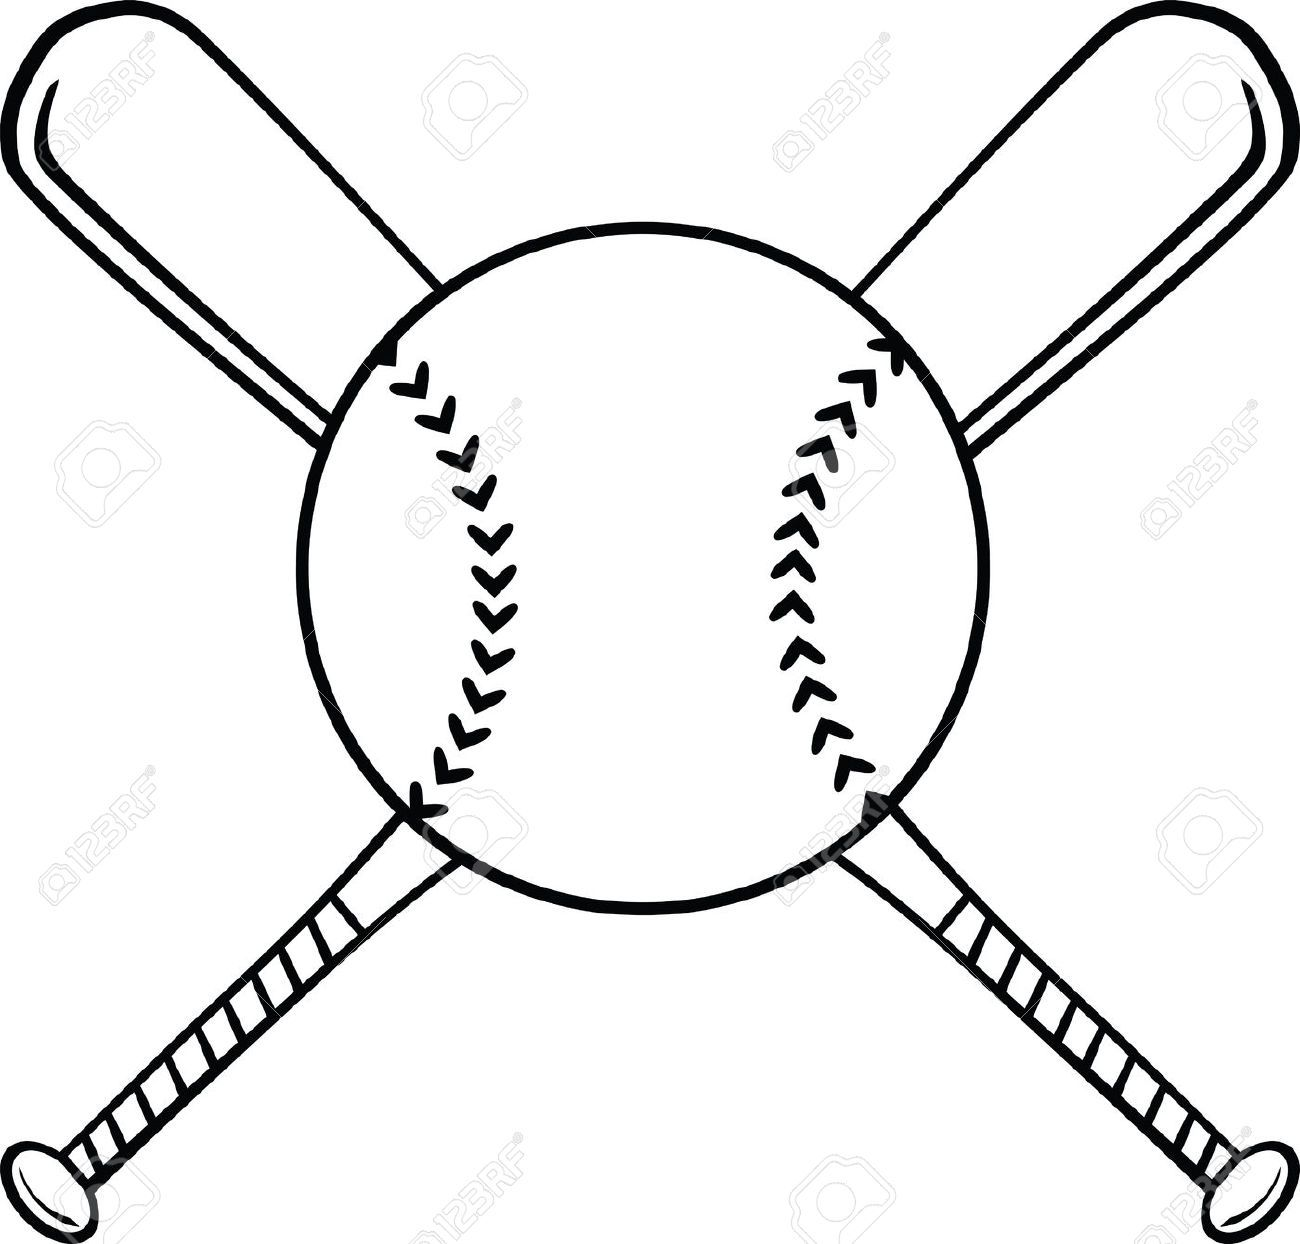 softball ball and bat clipart clipartfox silhouette pinterest rh pinterest com crossed baseball bats clipart black and white